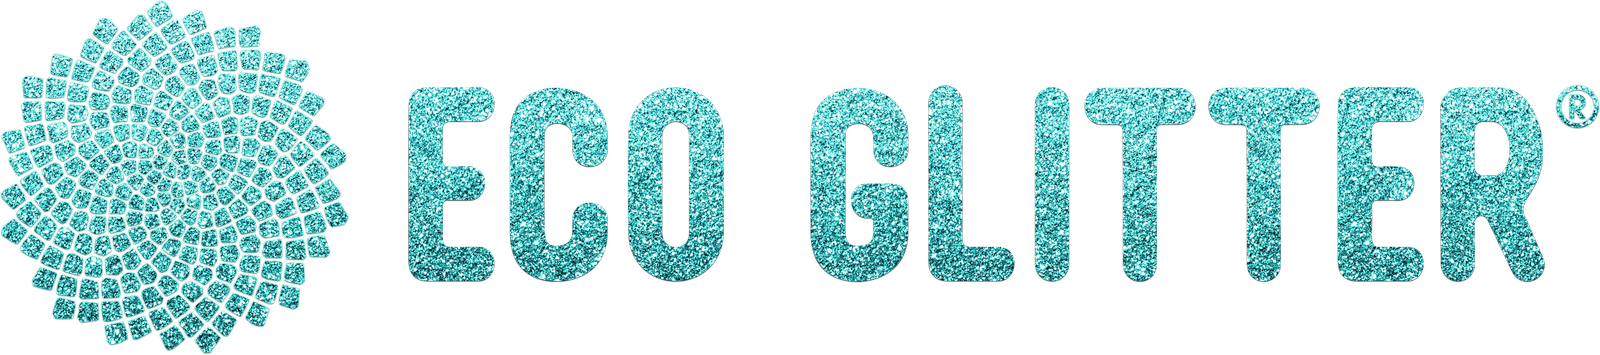 eco glitter vertical logo.png